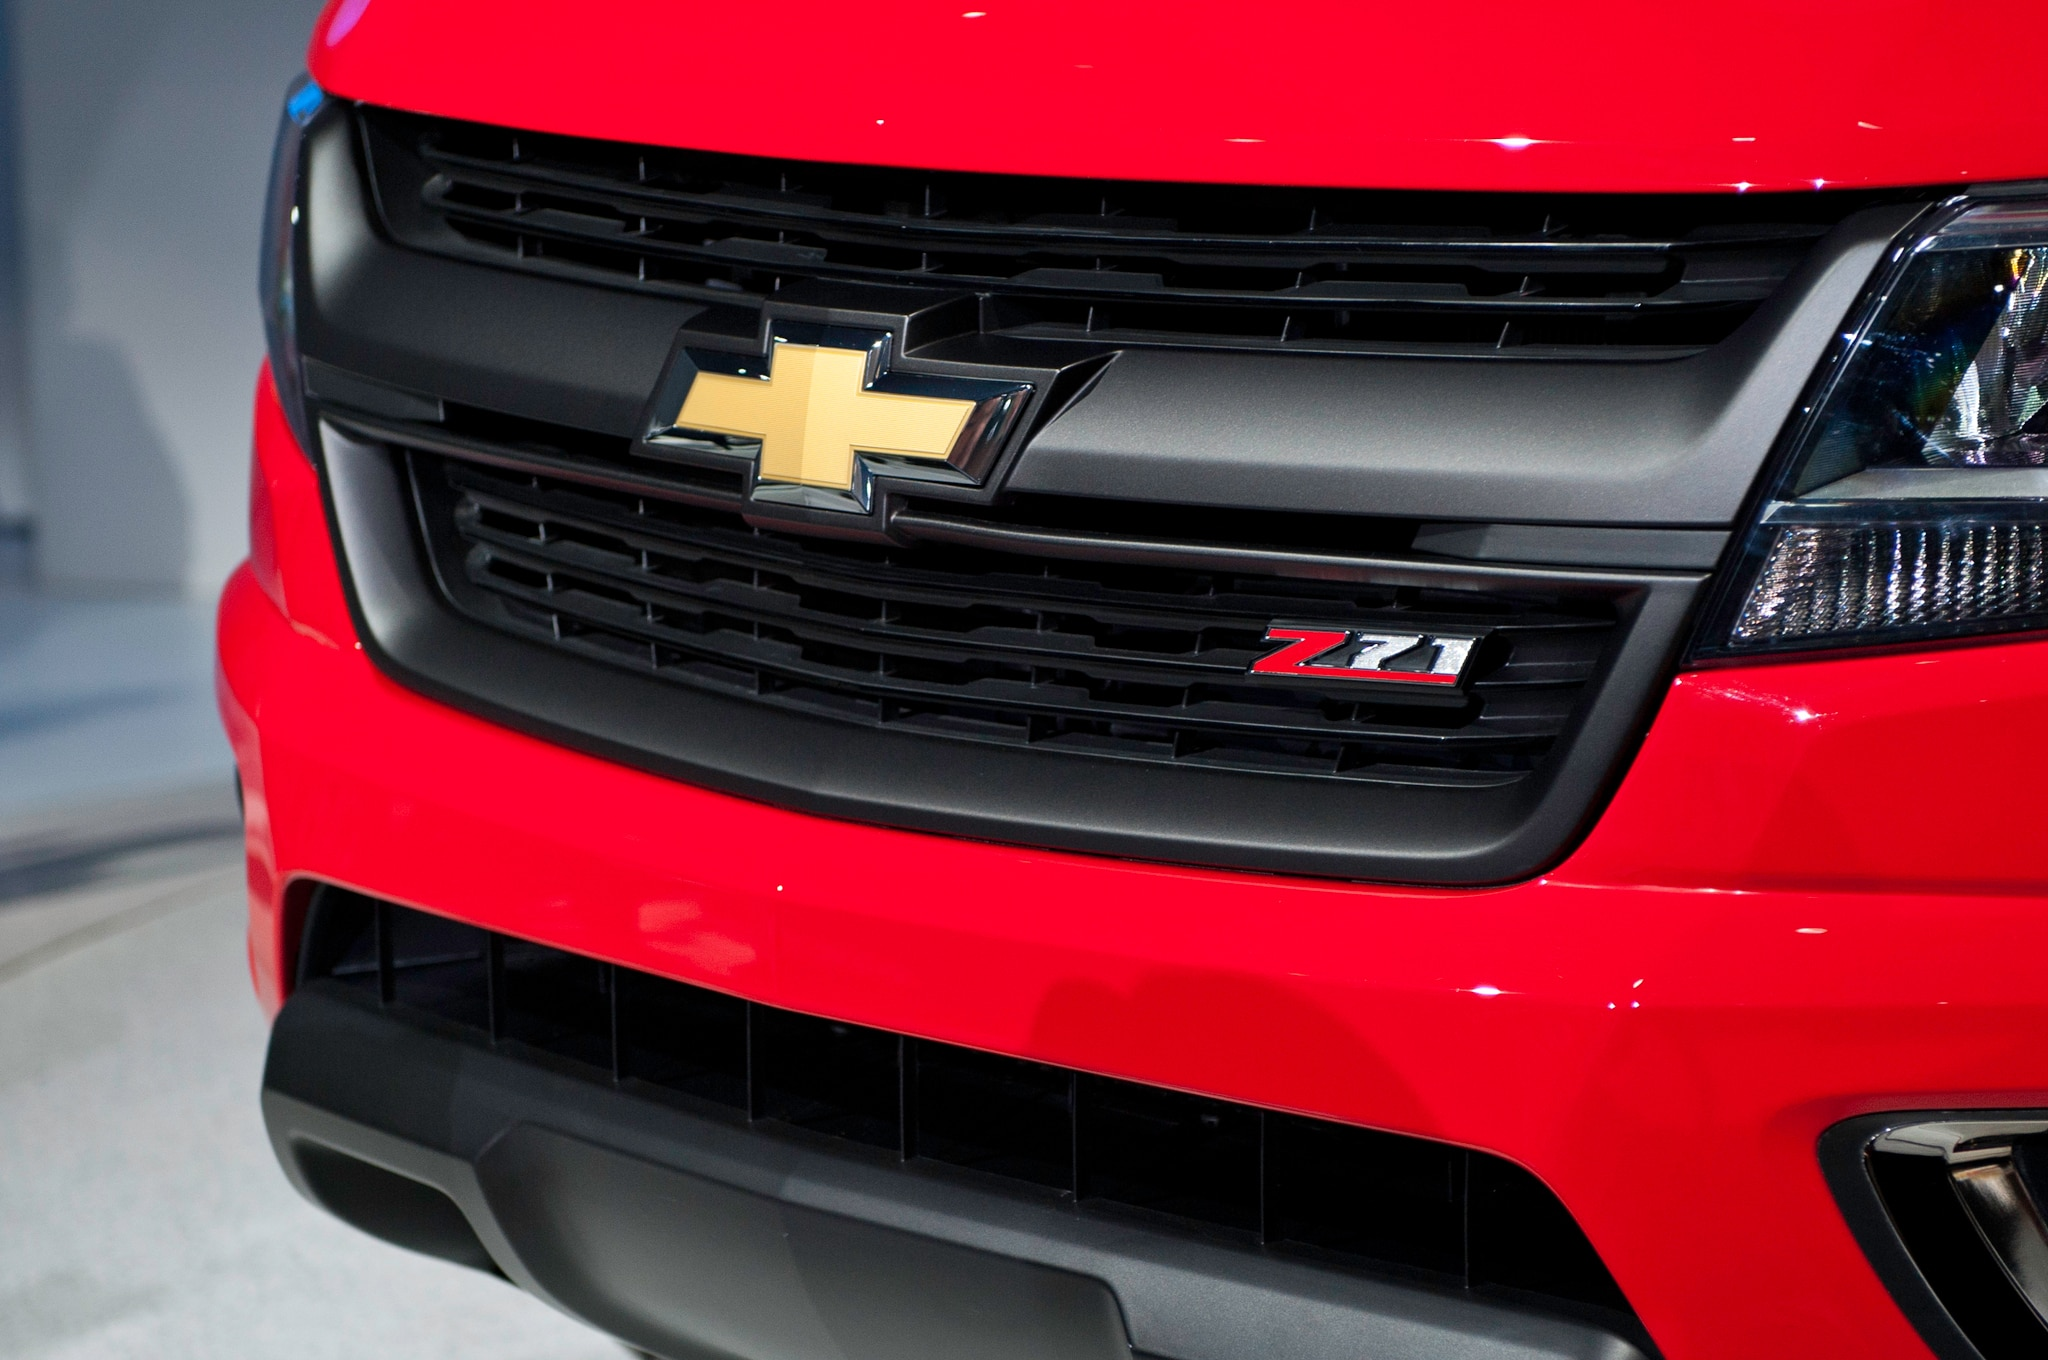 2015 Chevrolet Colorado front grille view